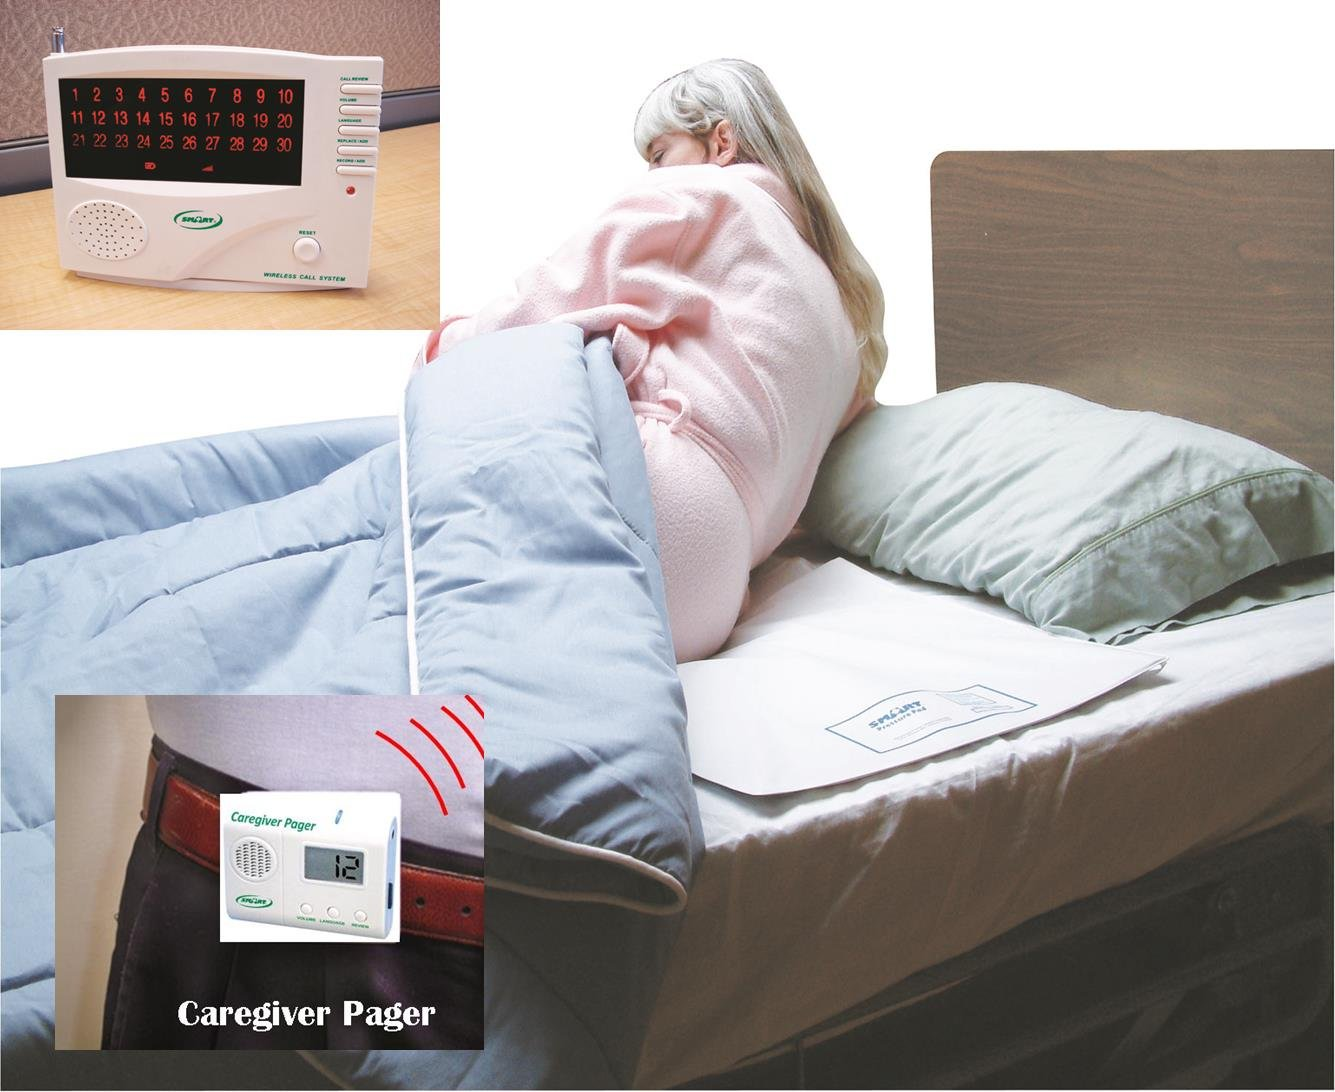 Cordless/Wireless Bed Alarm System with Pager - 20'' x 30'' Pad